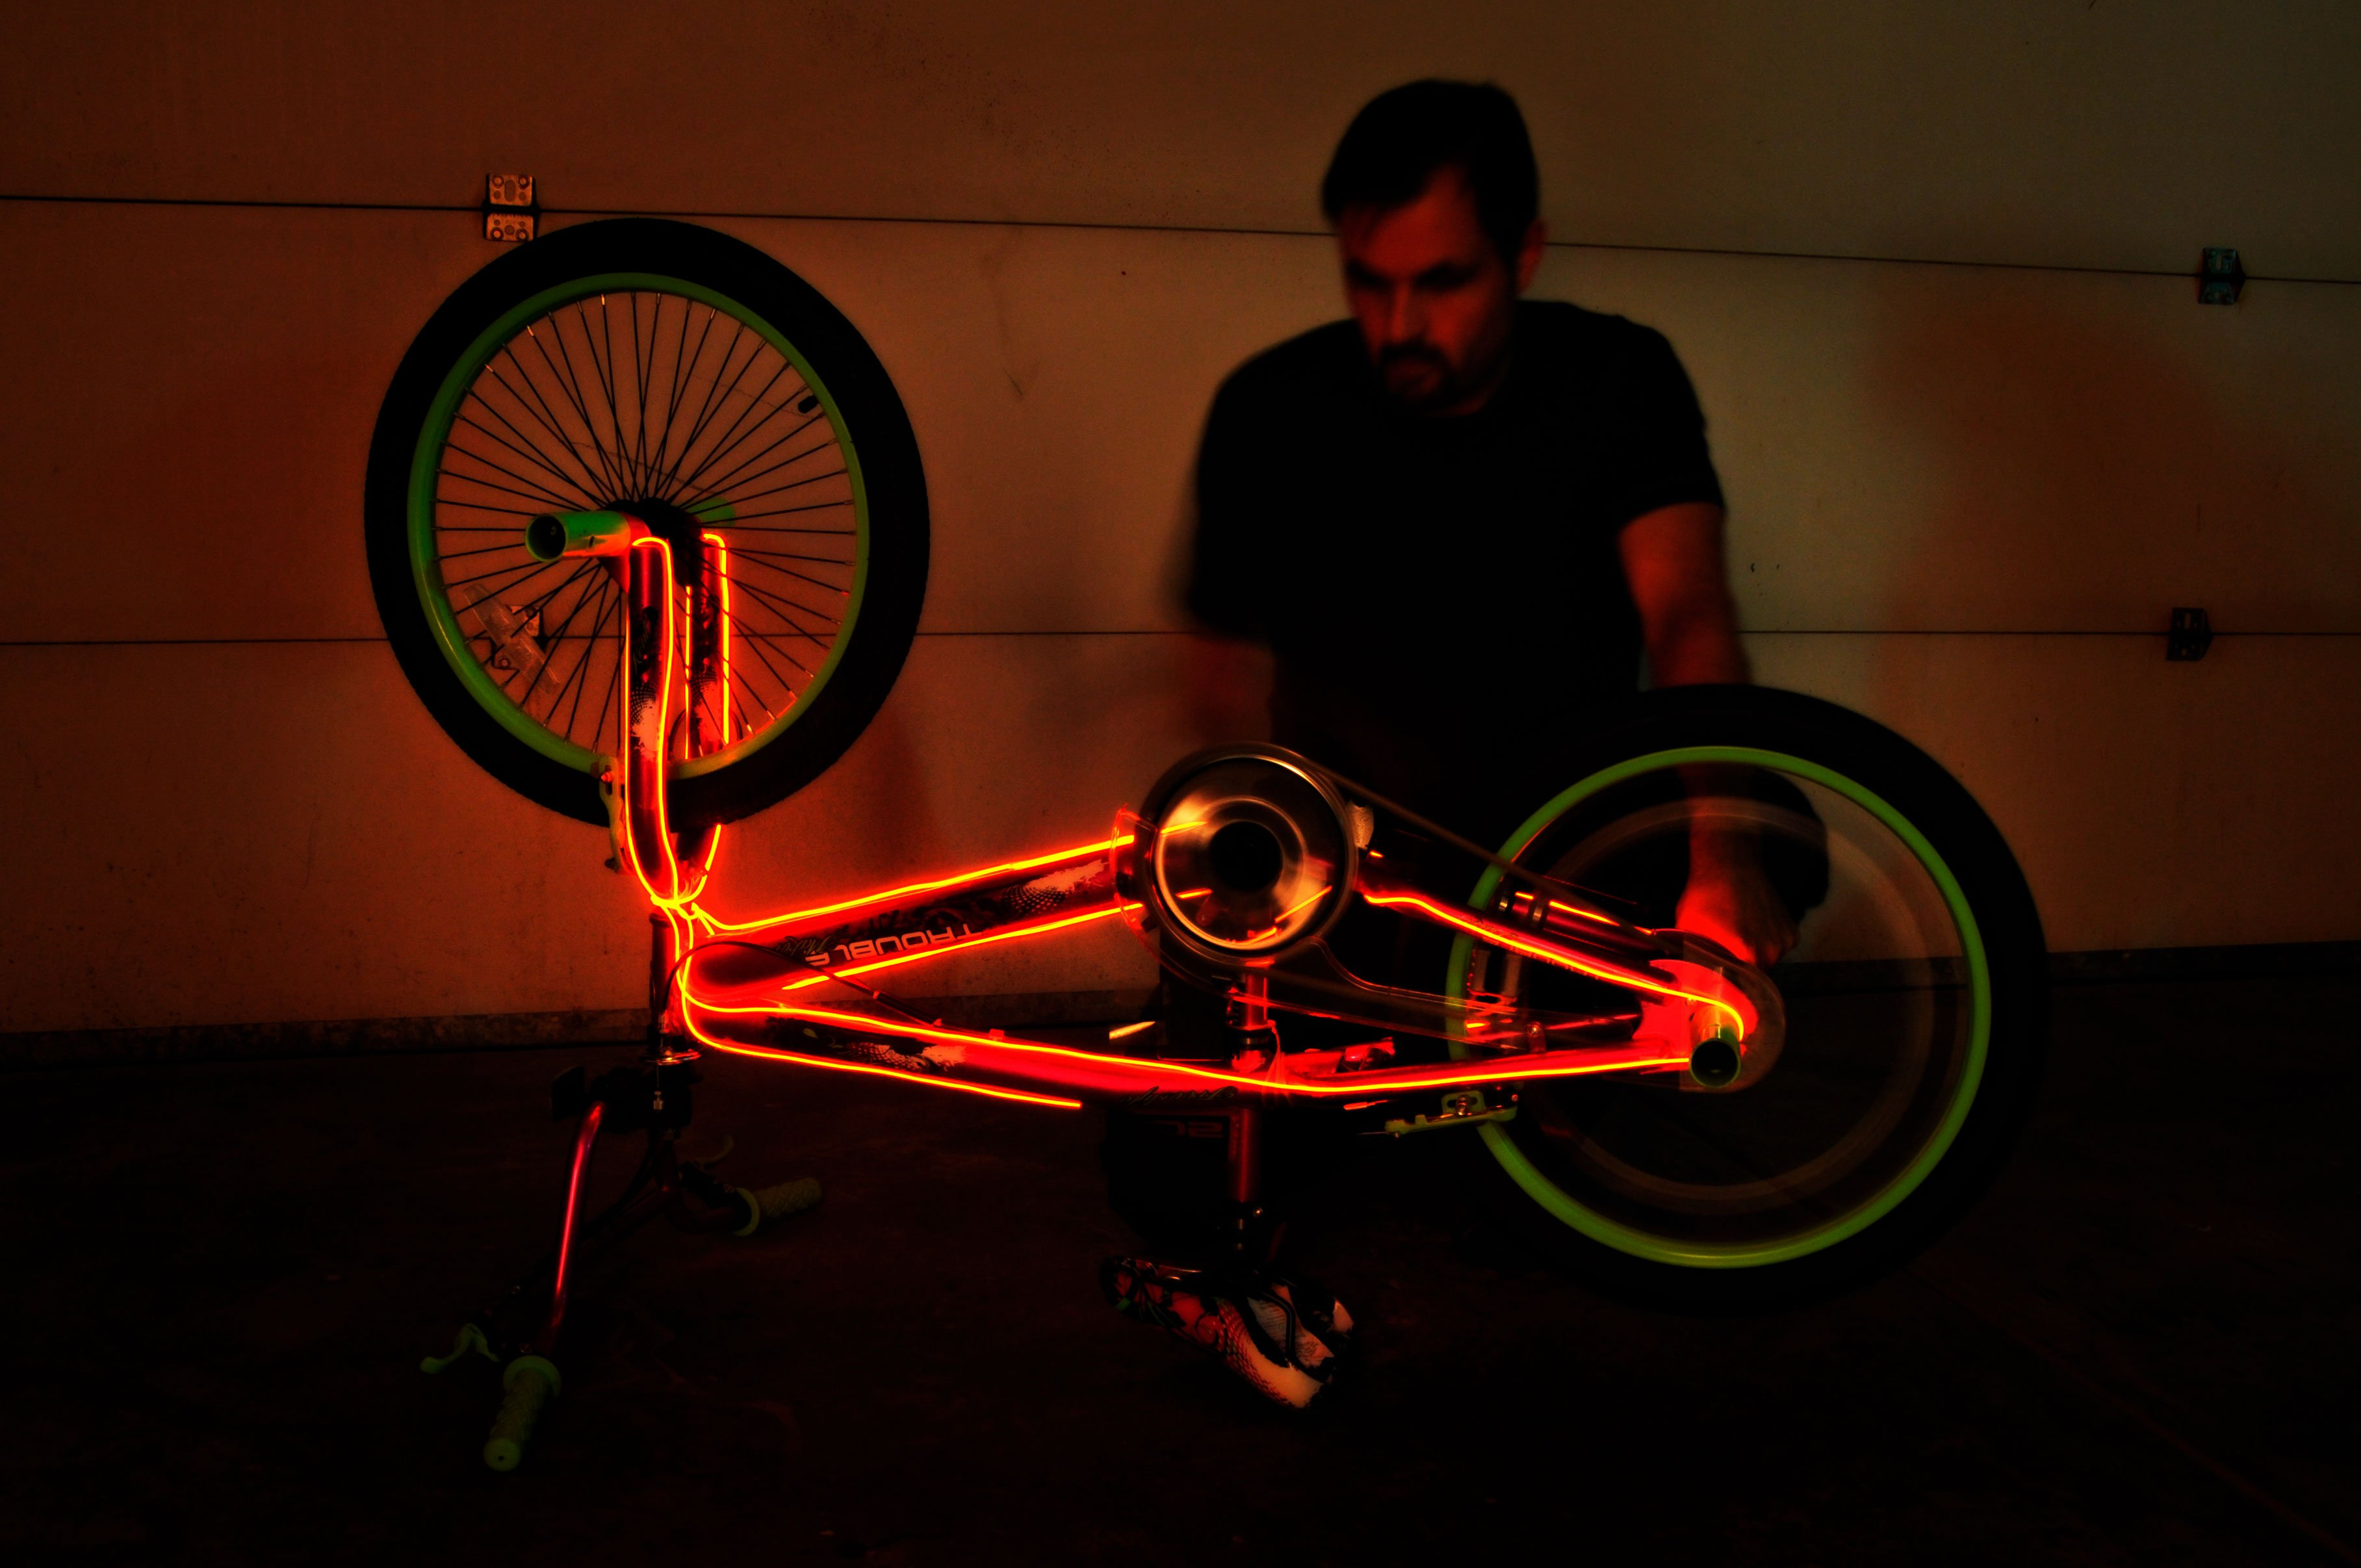 Gadgetize Your Bike with these 3 Projects